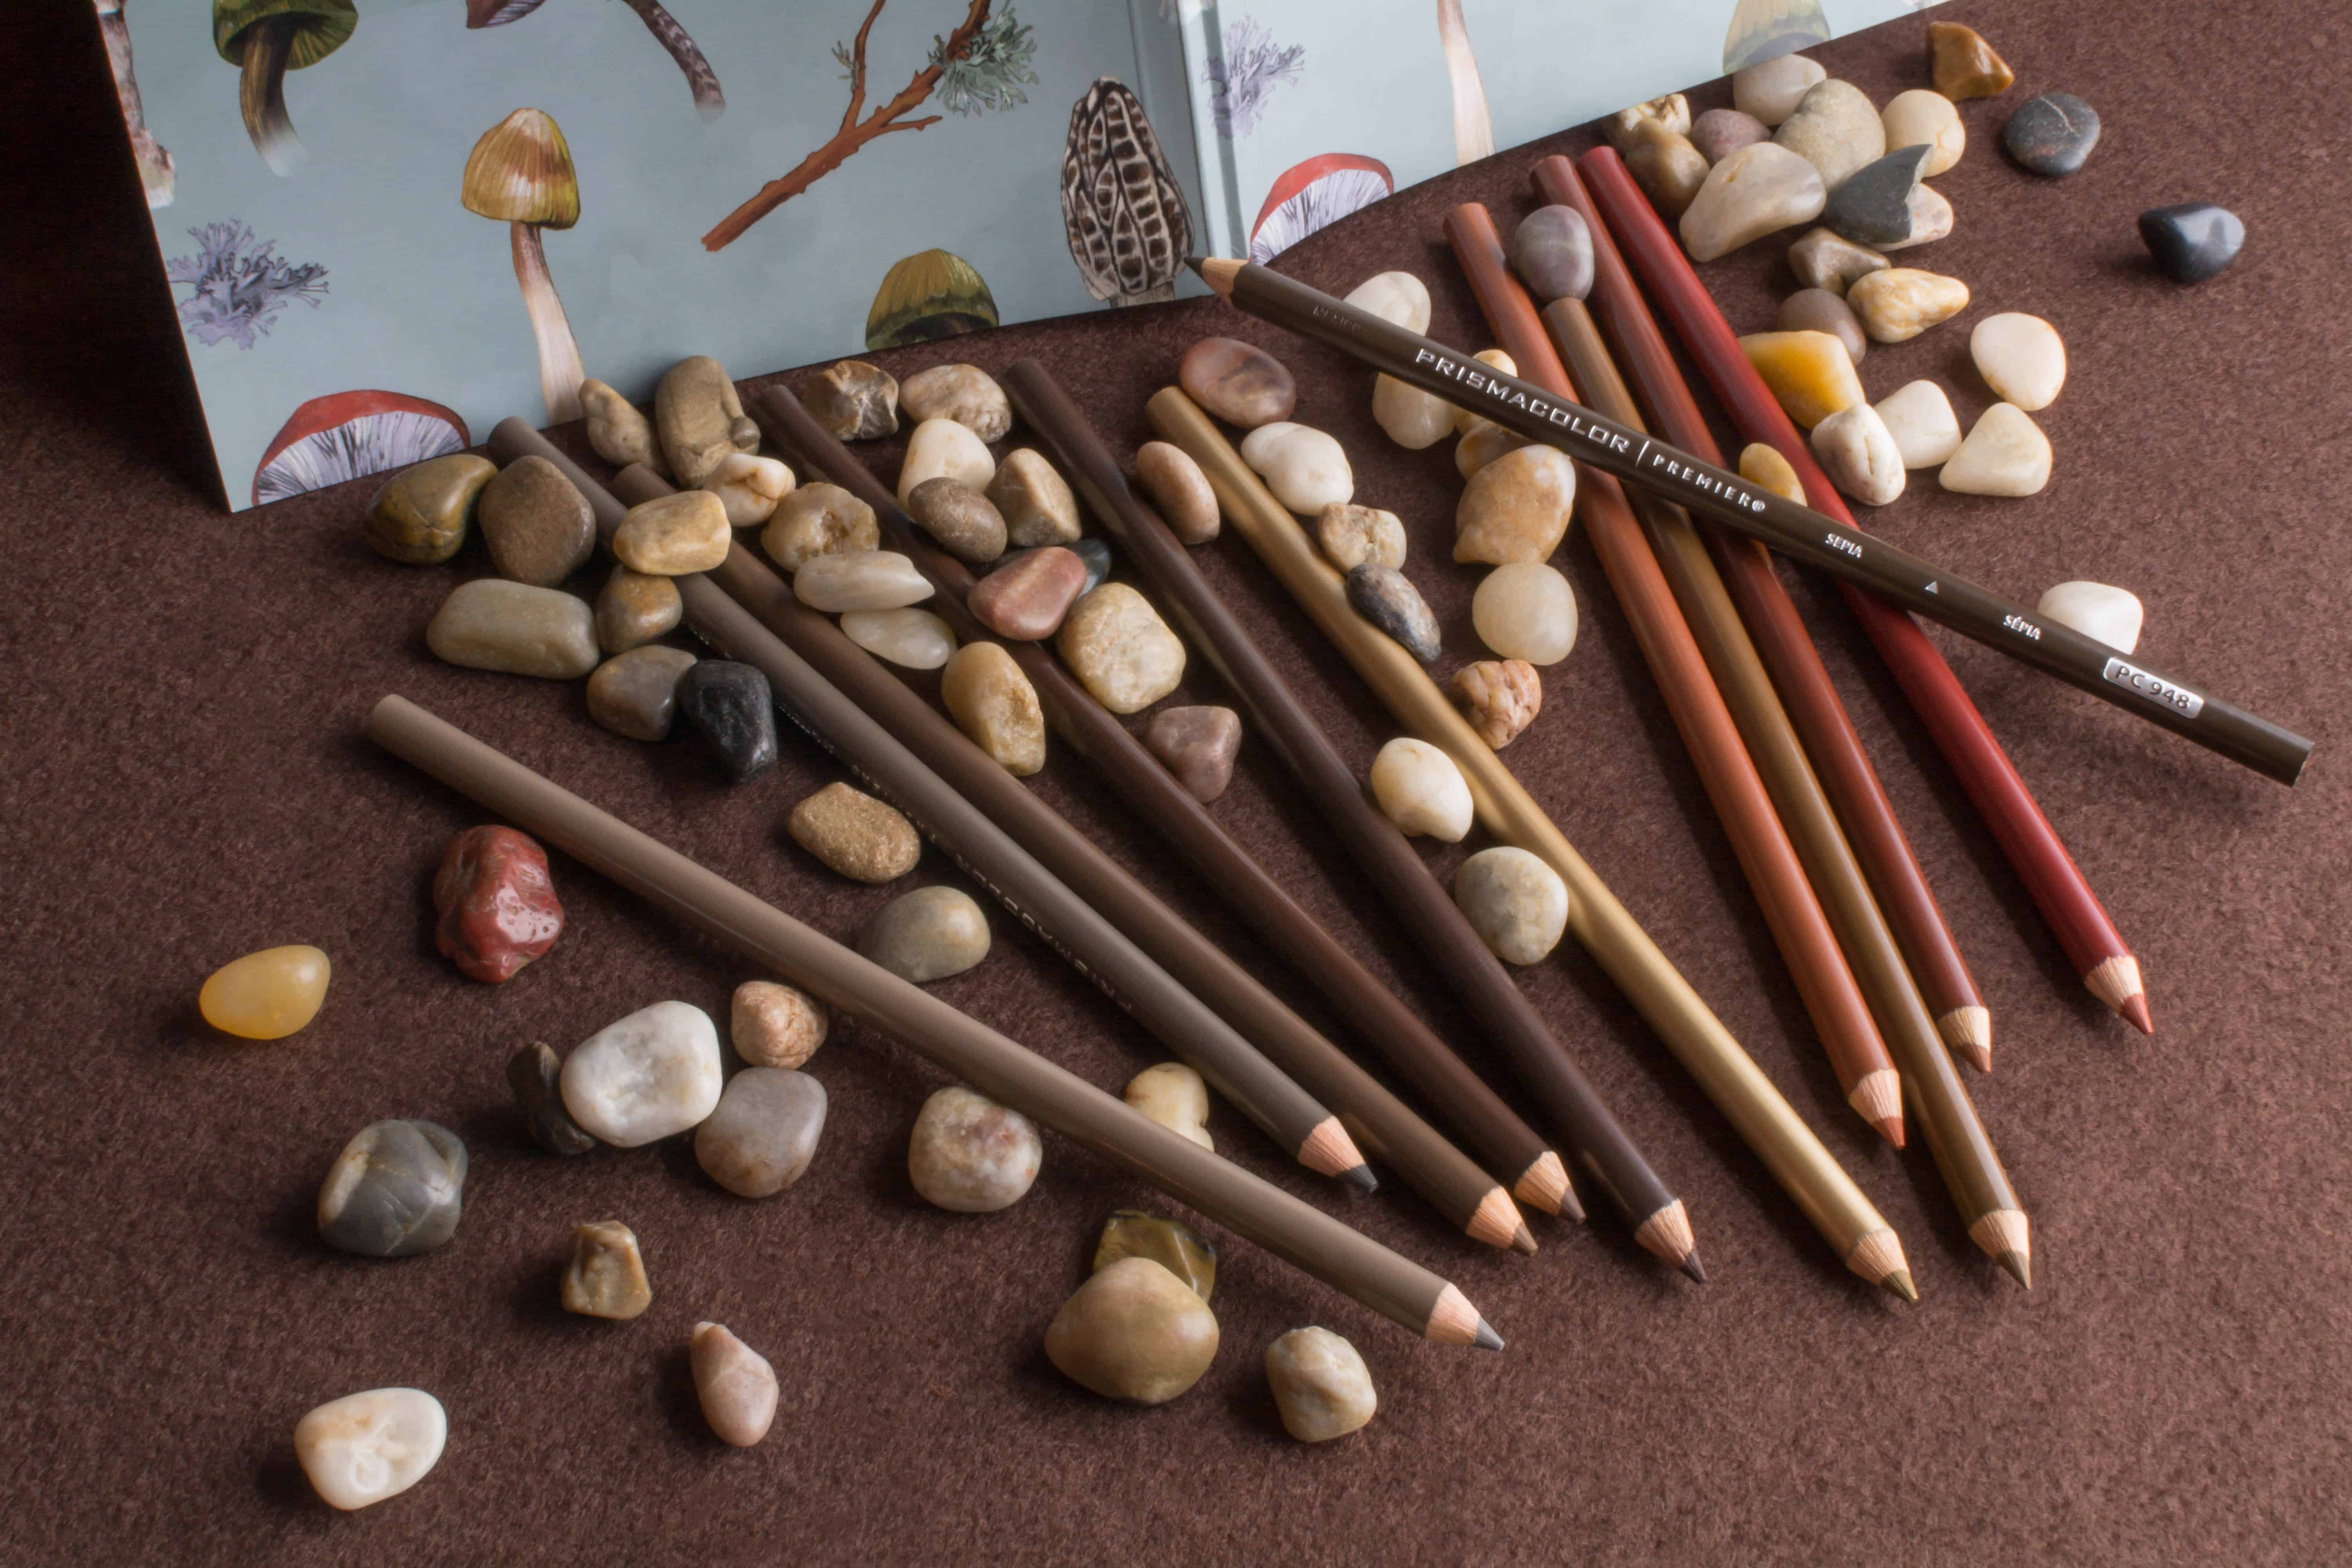 Photograph of brown prismacolor colored pencils on brown felt with small stones and pebbles.